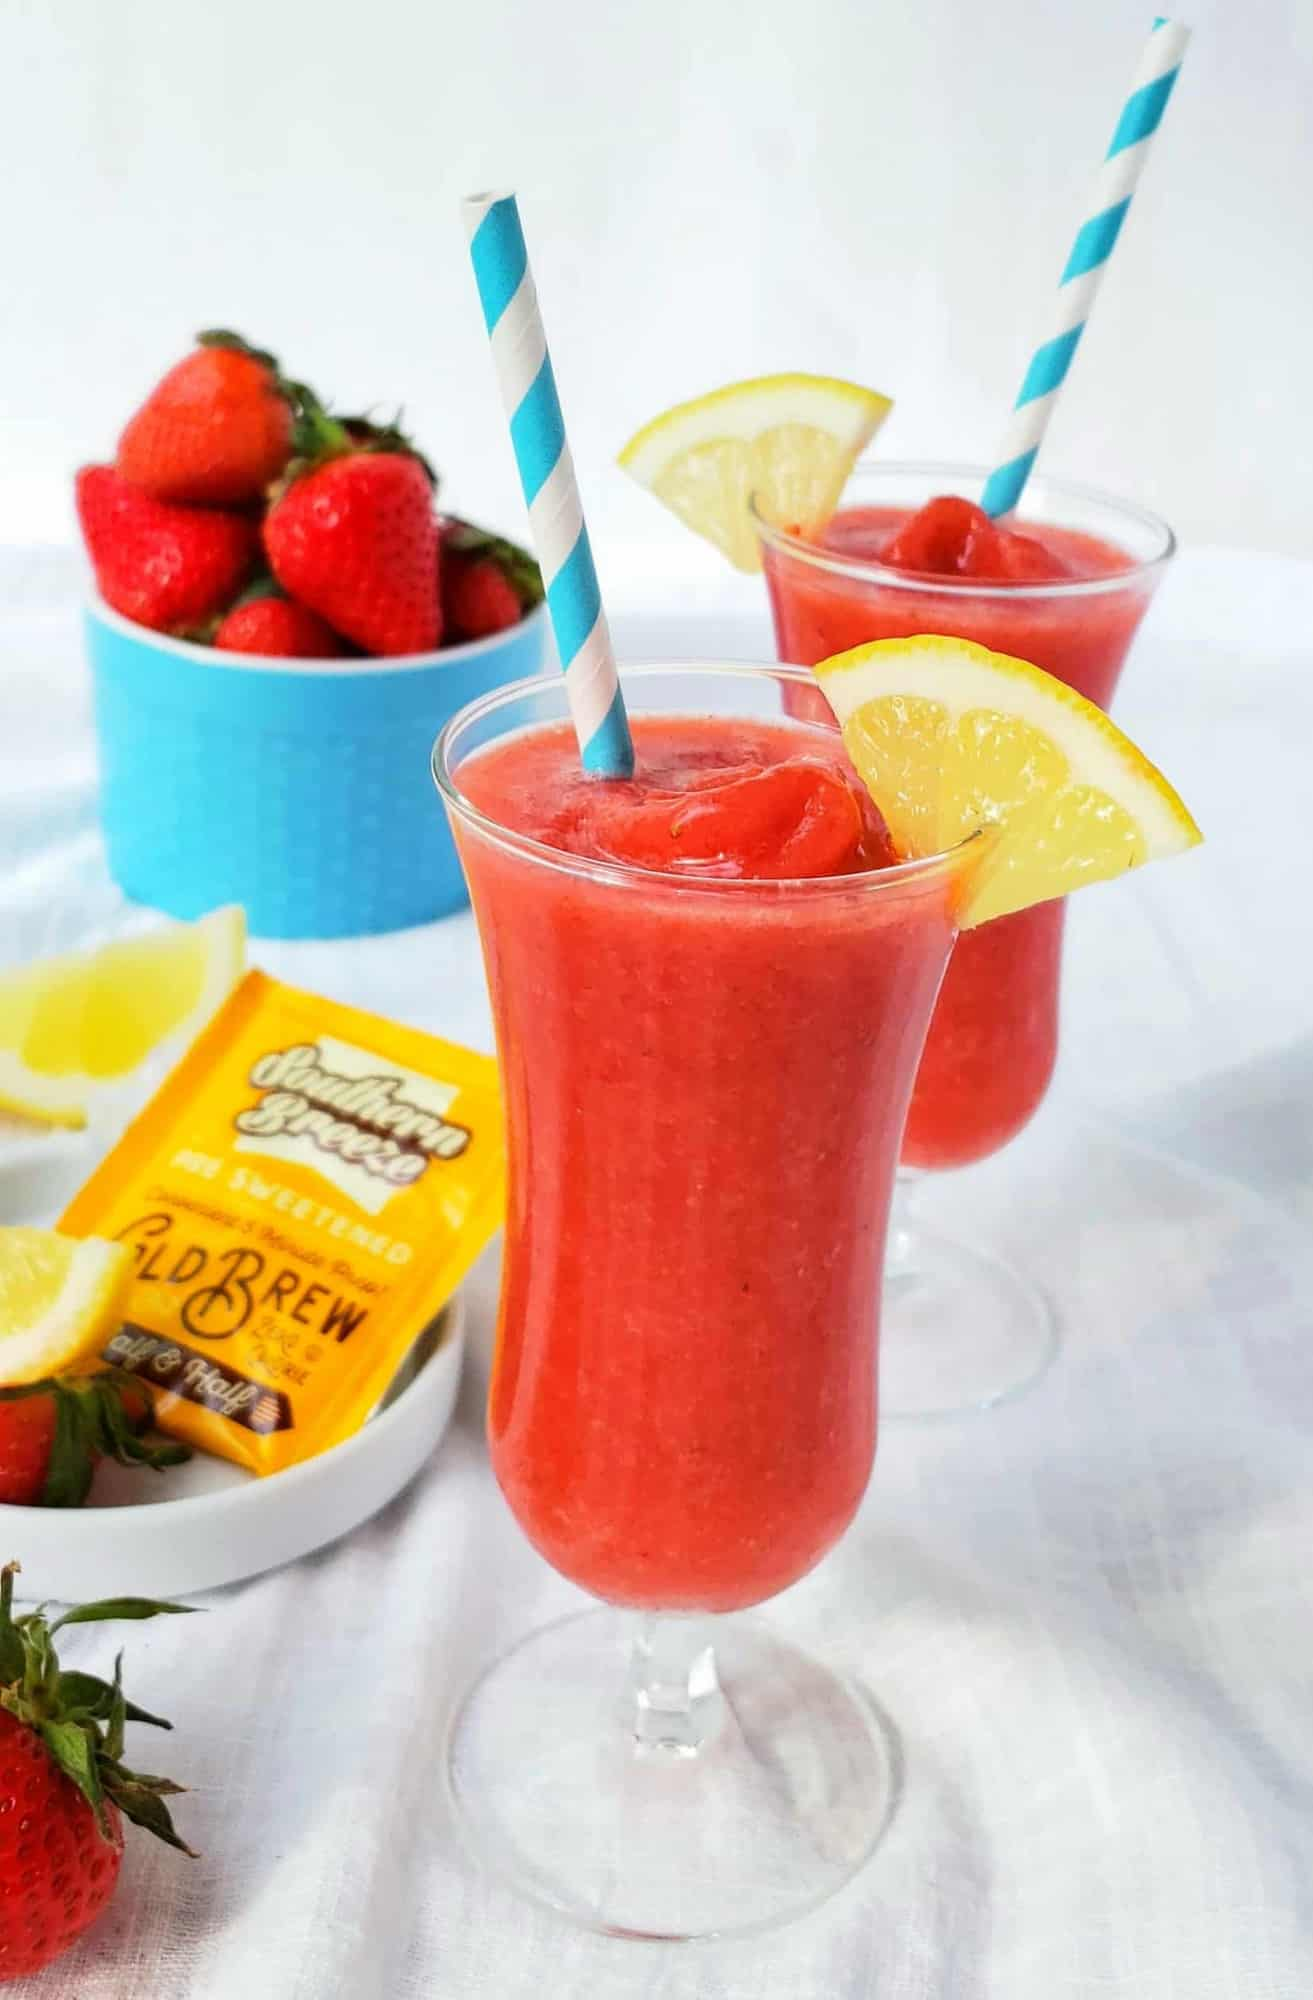 2 Ingredient and 2 Minutes to prepare Frozen Strawberry and Sweet Tea Lemonade is made with zero calorie sweet tea! Garnish with lemon slice and blue striped paper straw with Southern Breeze sweet tea individual tea bag on a white plate.